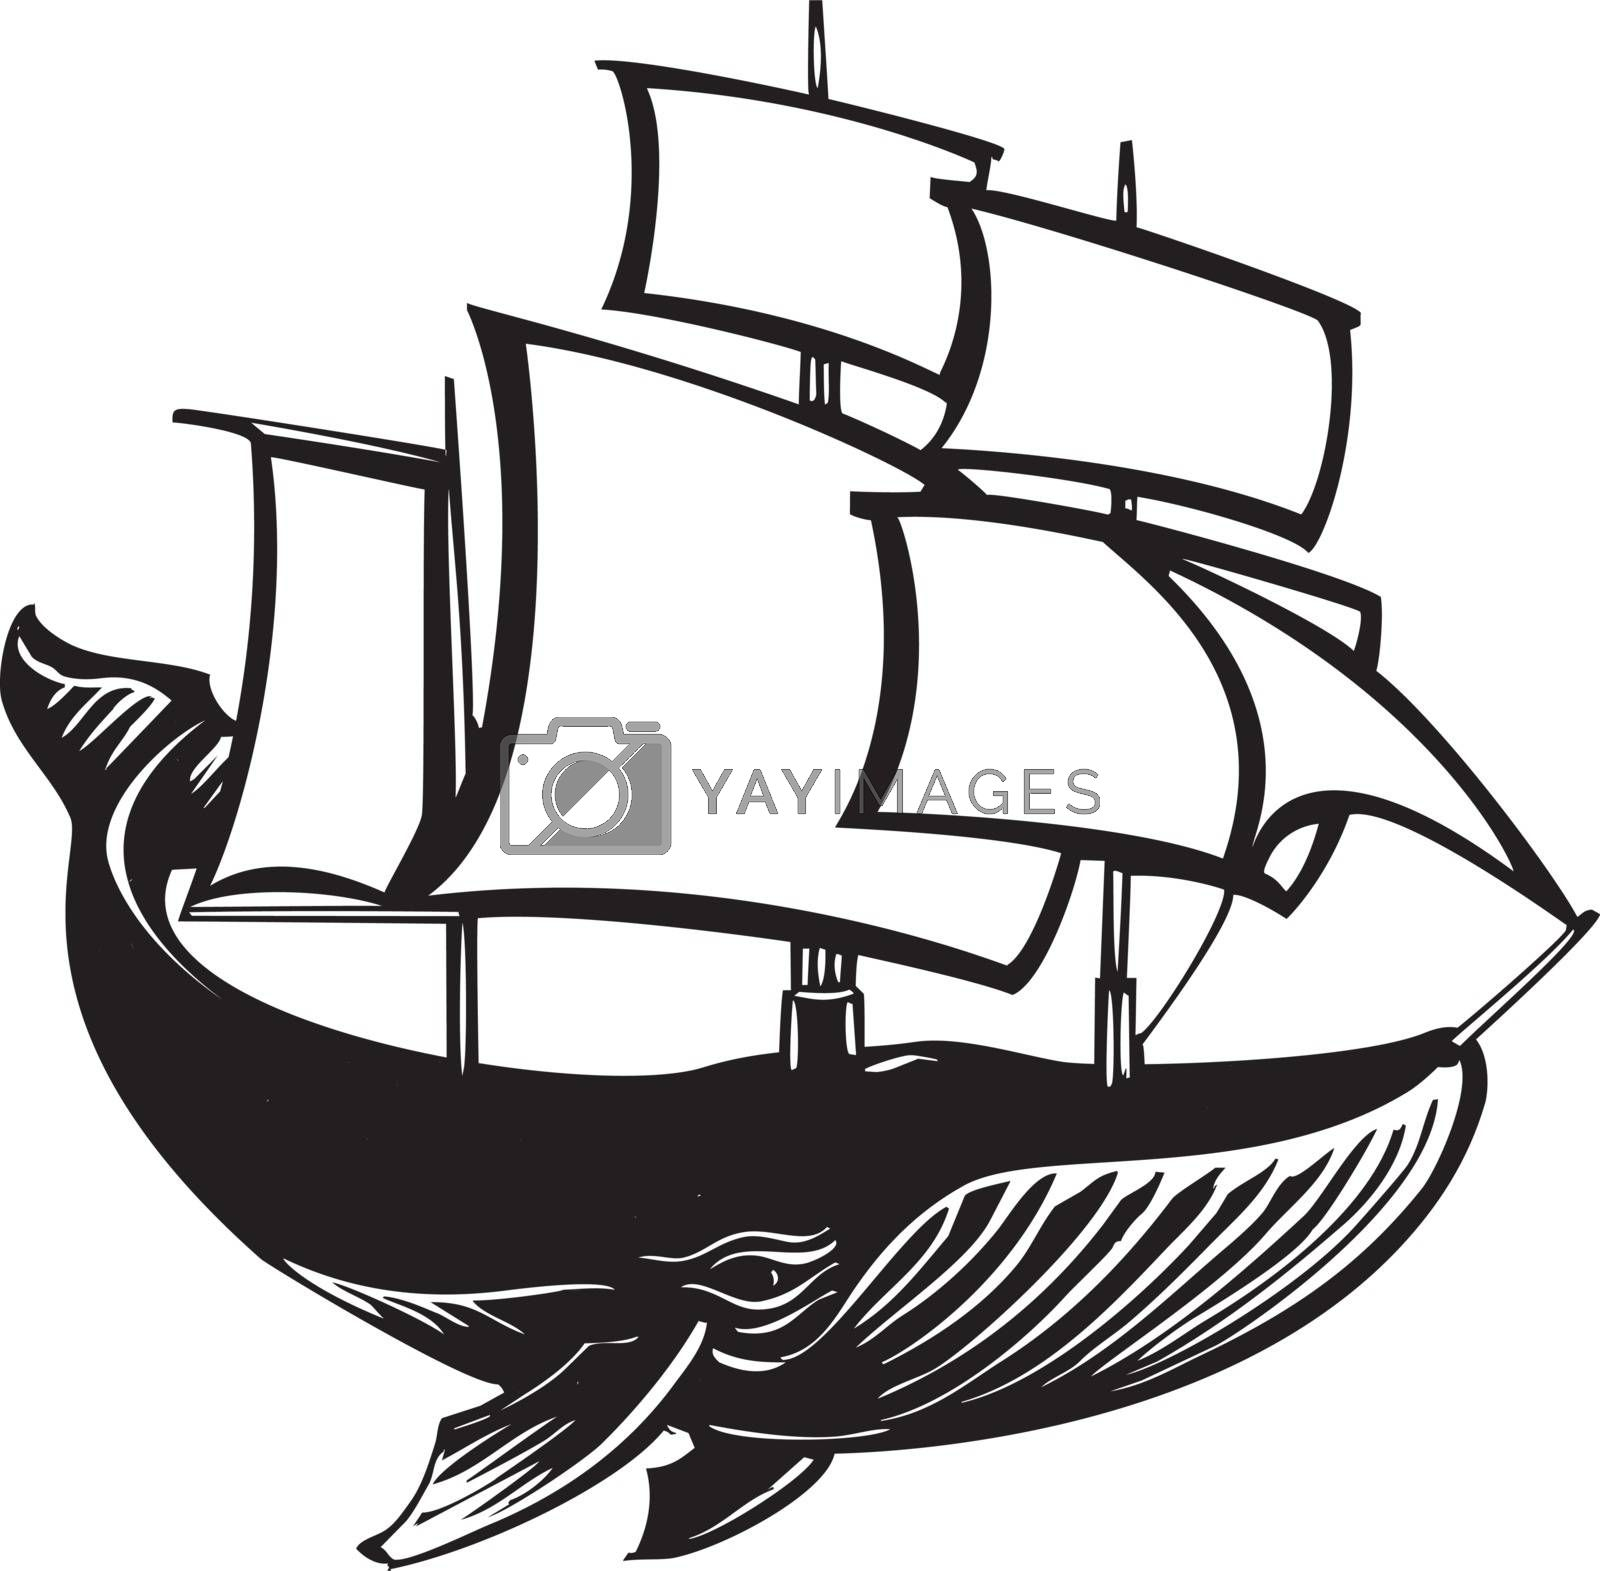 Woodcut style sail propelled baleen whale.